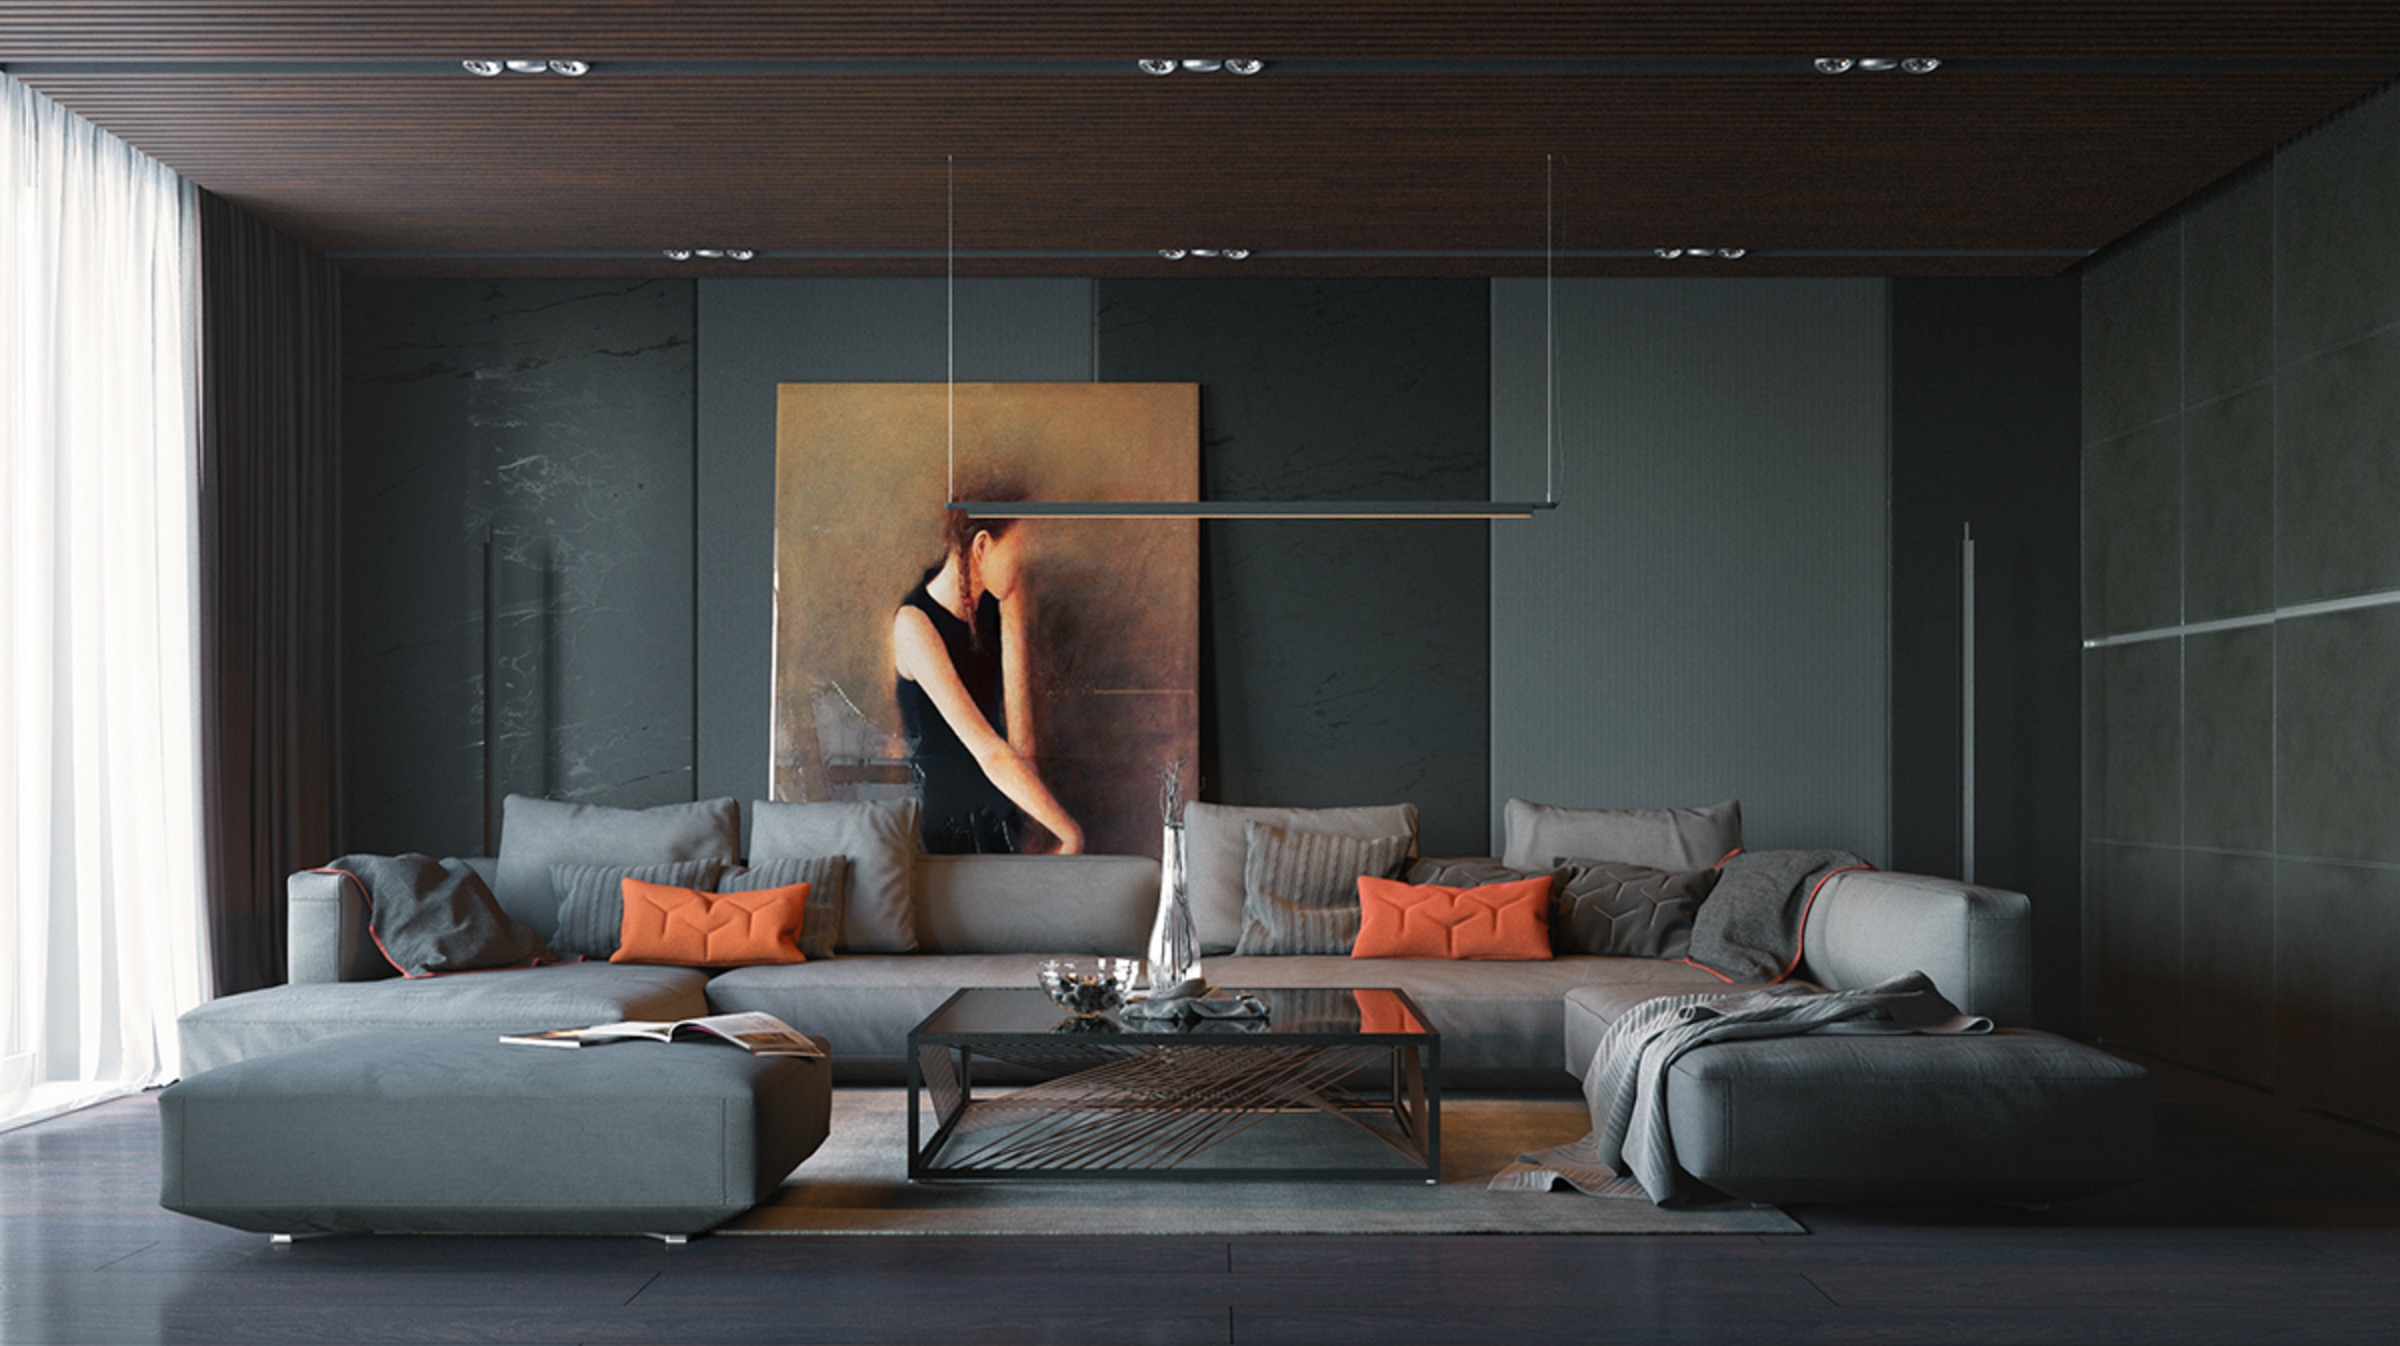 Interior Design Wall Art Large Wall Art For Living Rooms Ideas & Inspiration